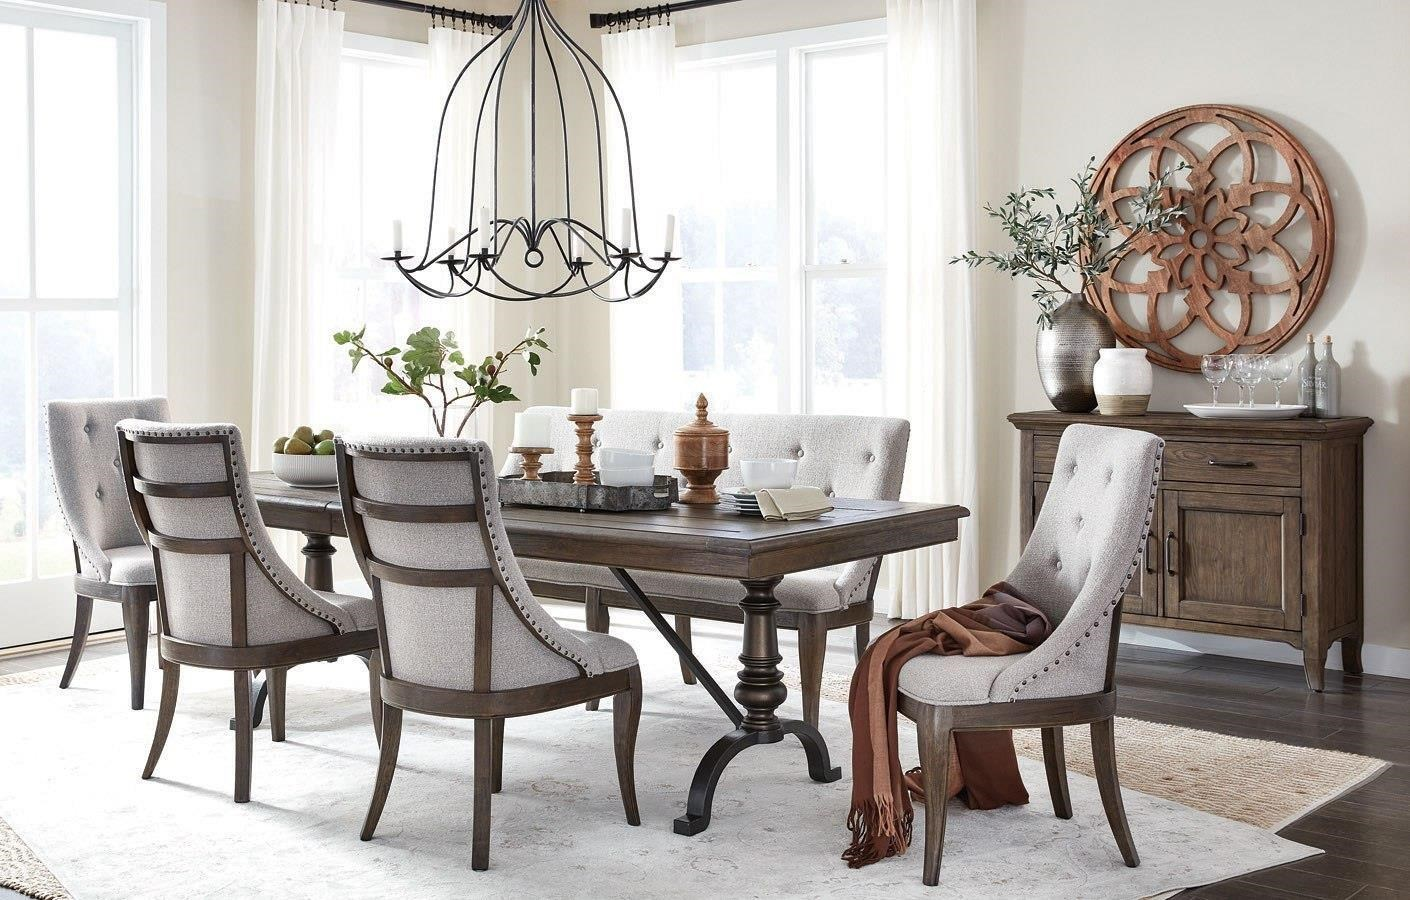 Roxbury Manor 5 Piece Dining Set by Magnussen Home at Darvin Furniture